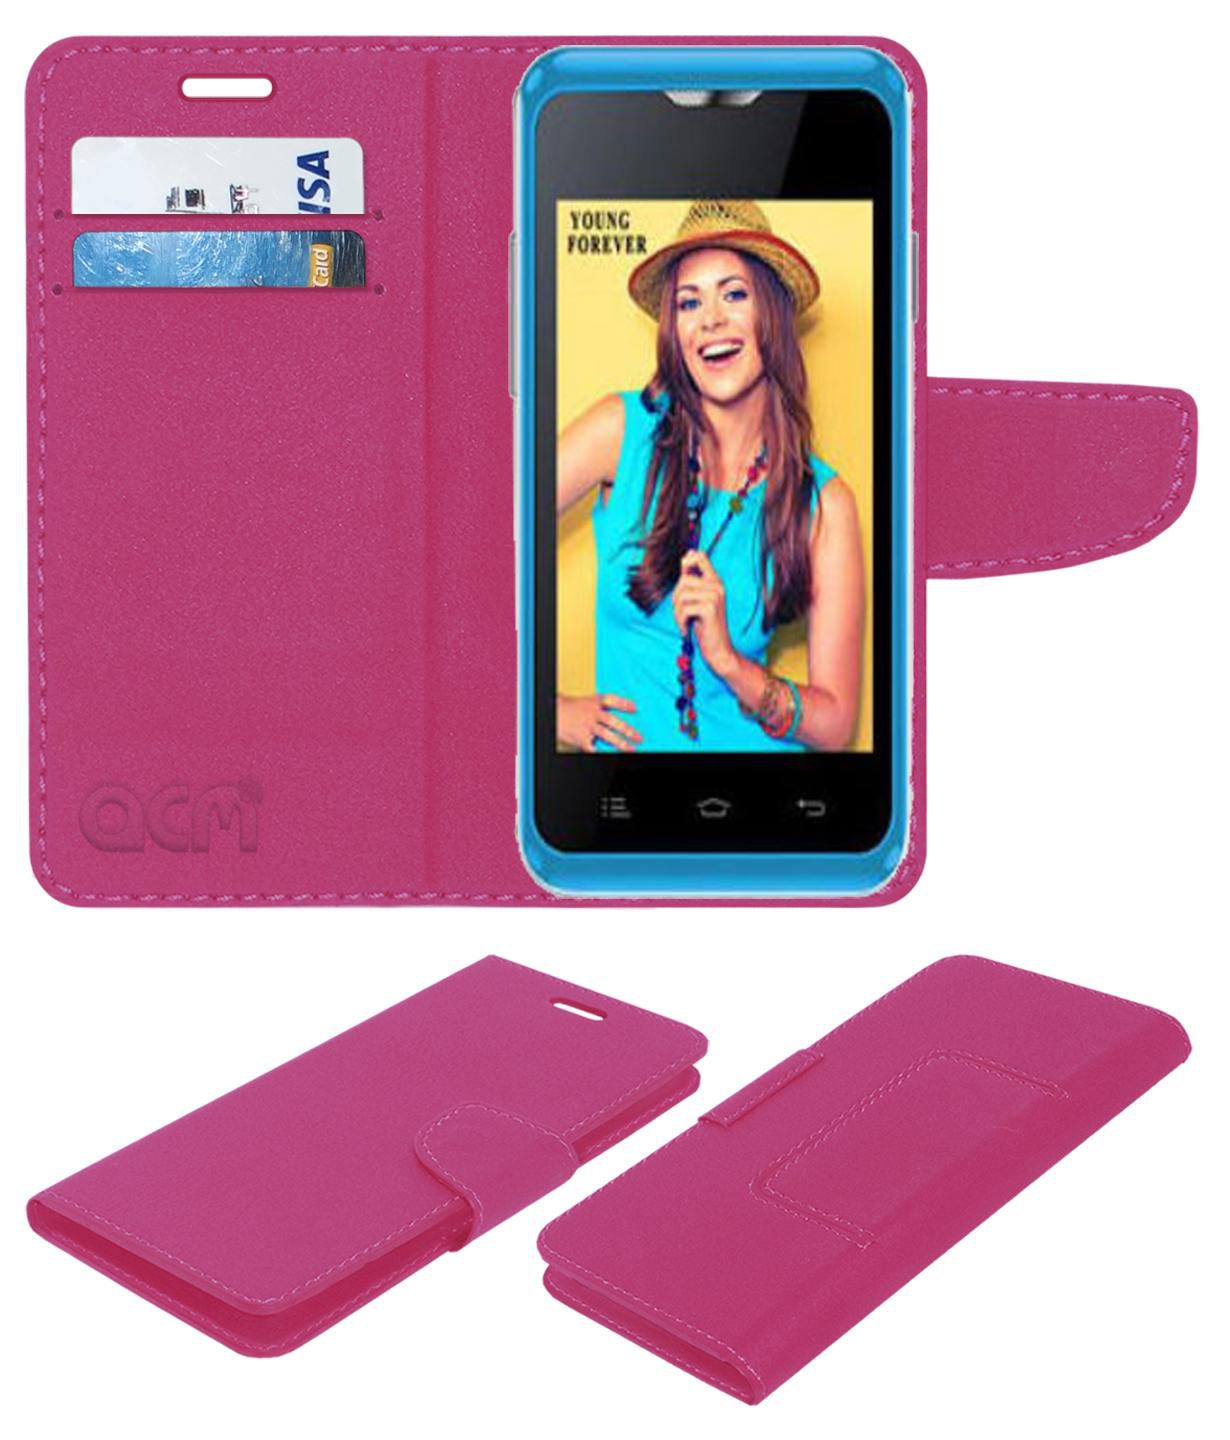 Celkon Campus A359 Flip Cover by ACM - Pink